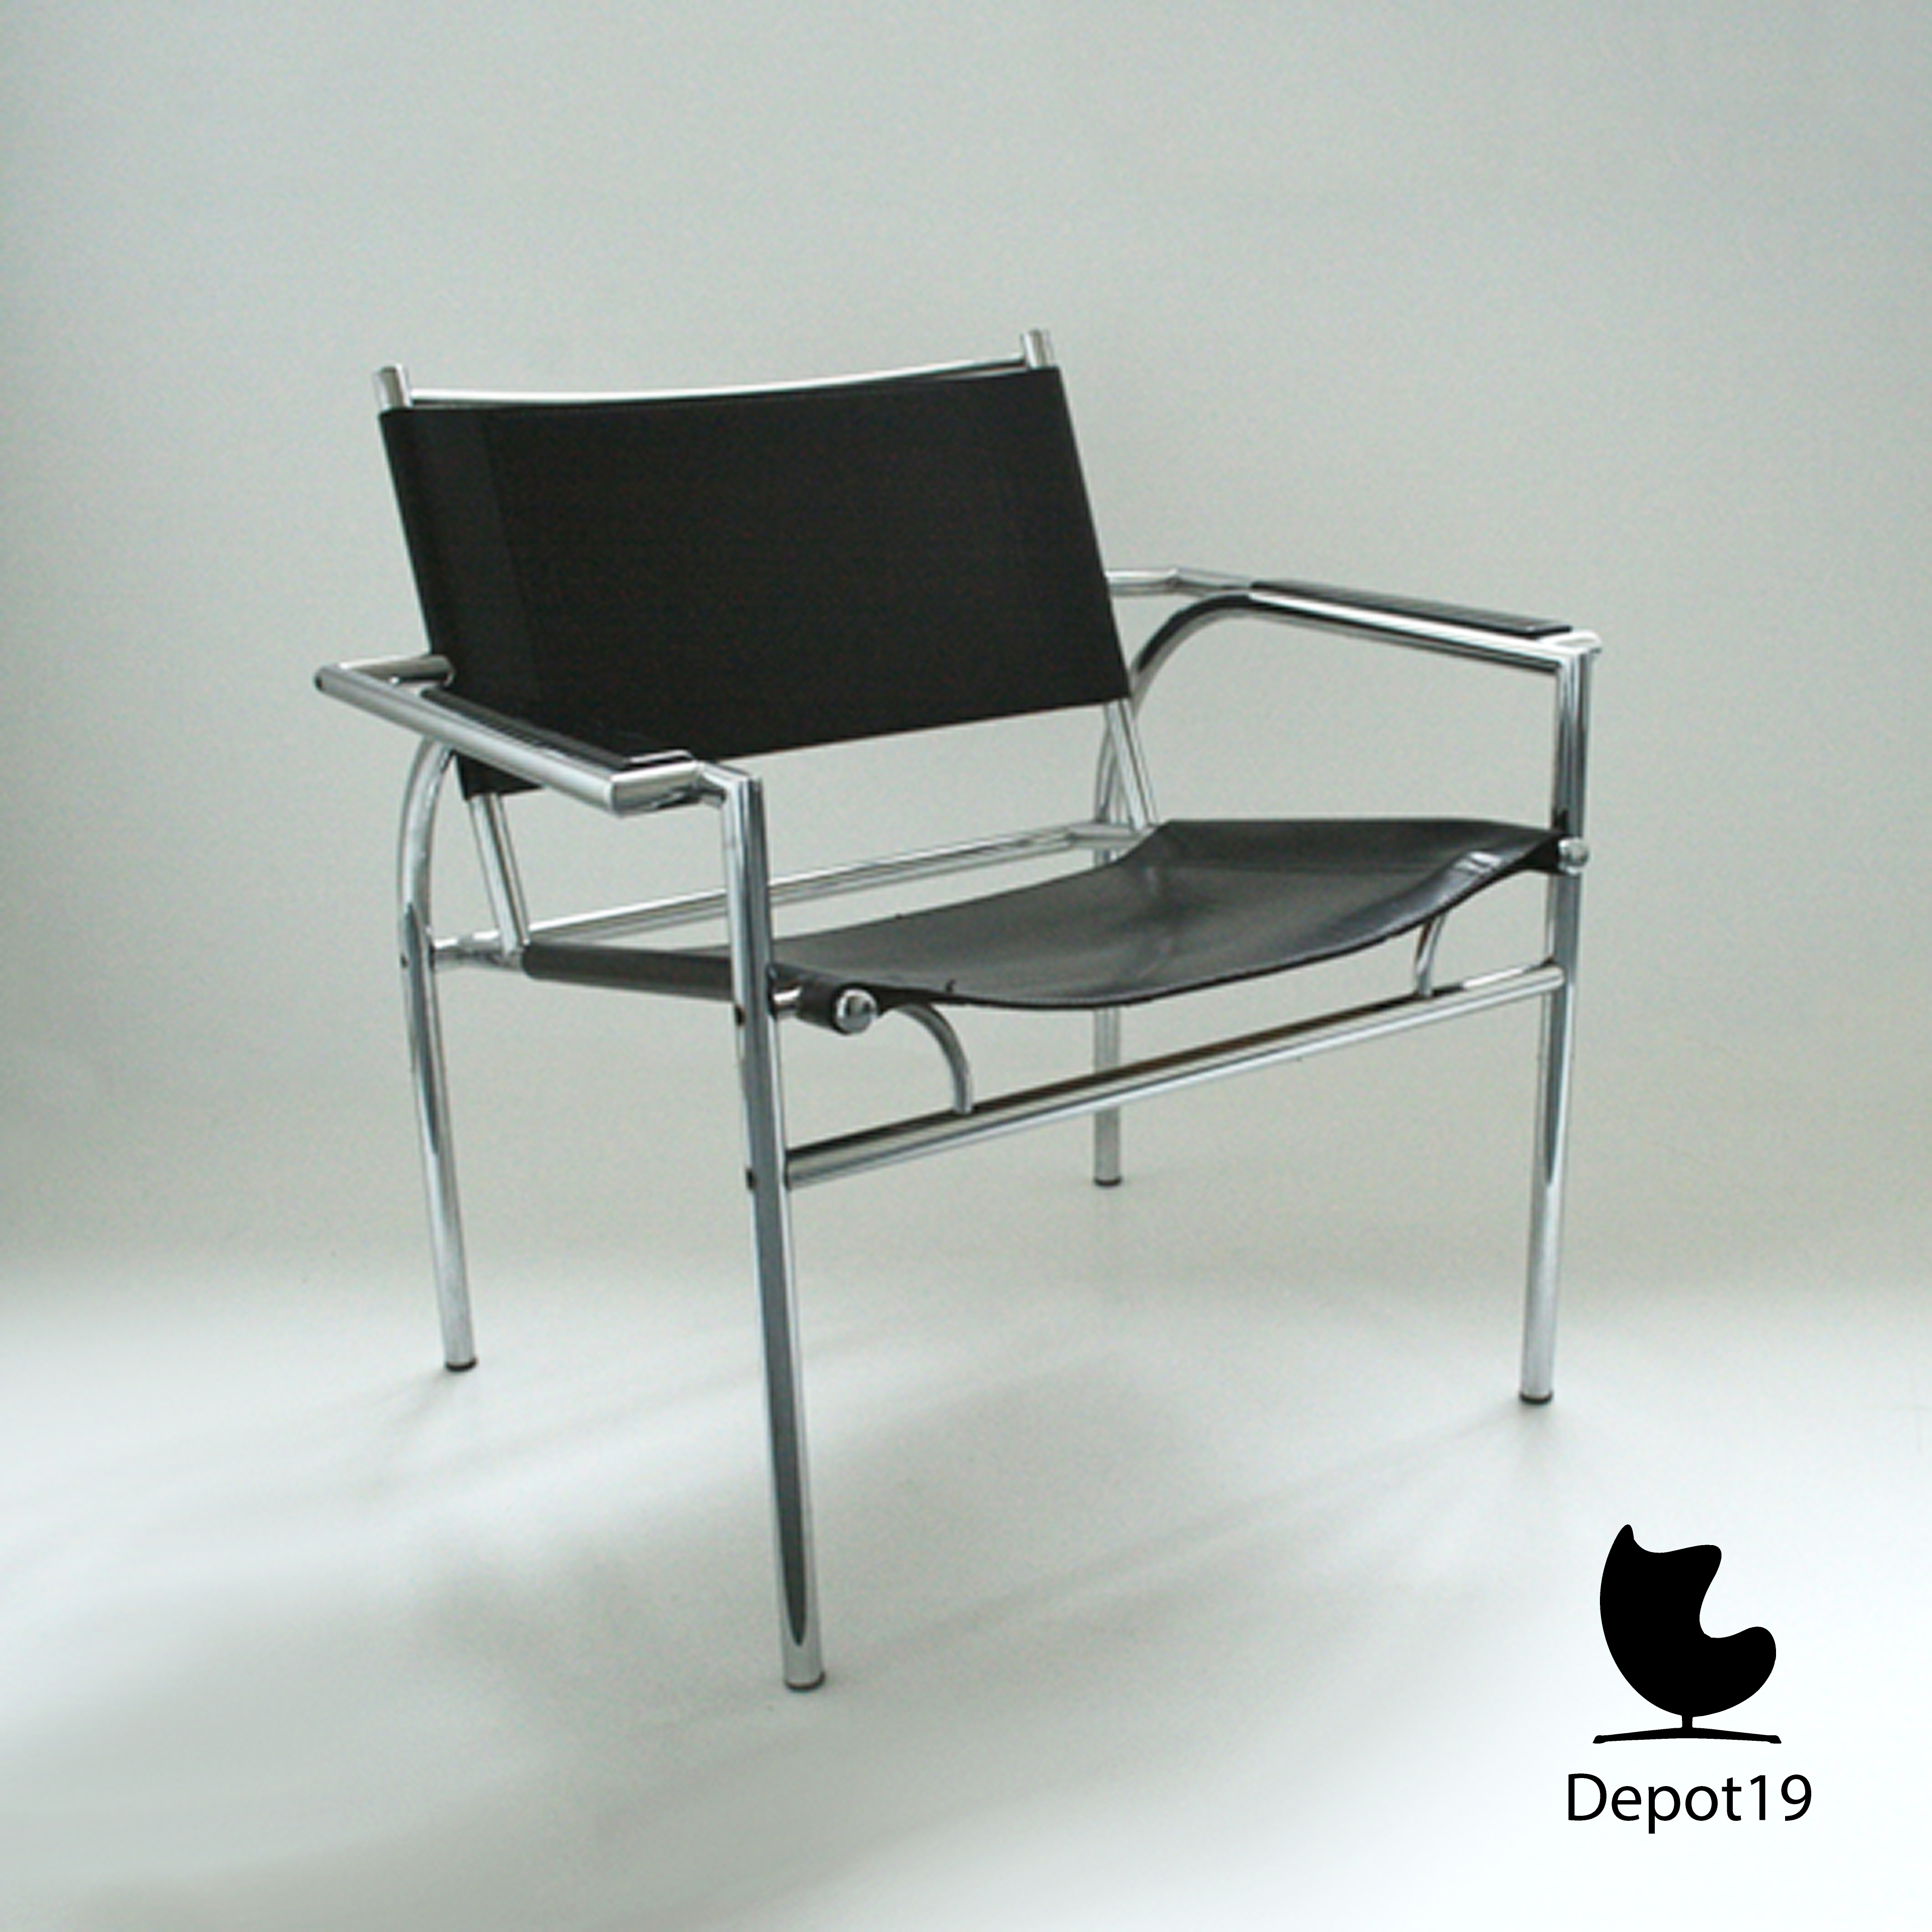 Gerard vollenbrock leolux 4735 easy chair 1980s depot 19 for 1980s chair